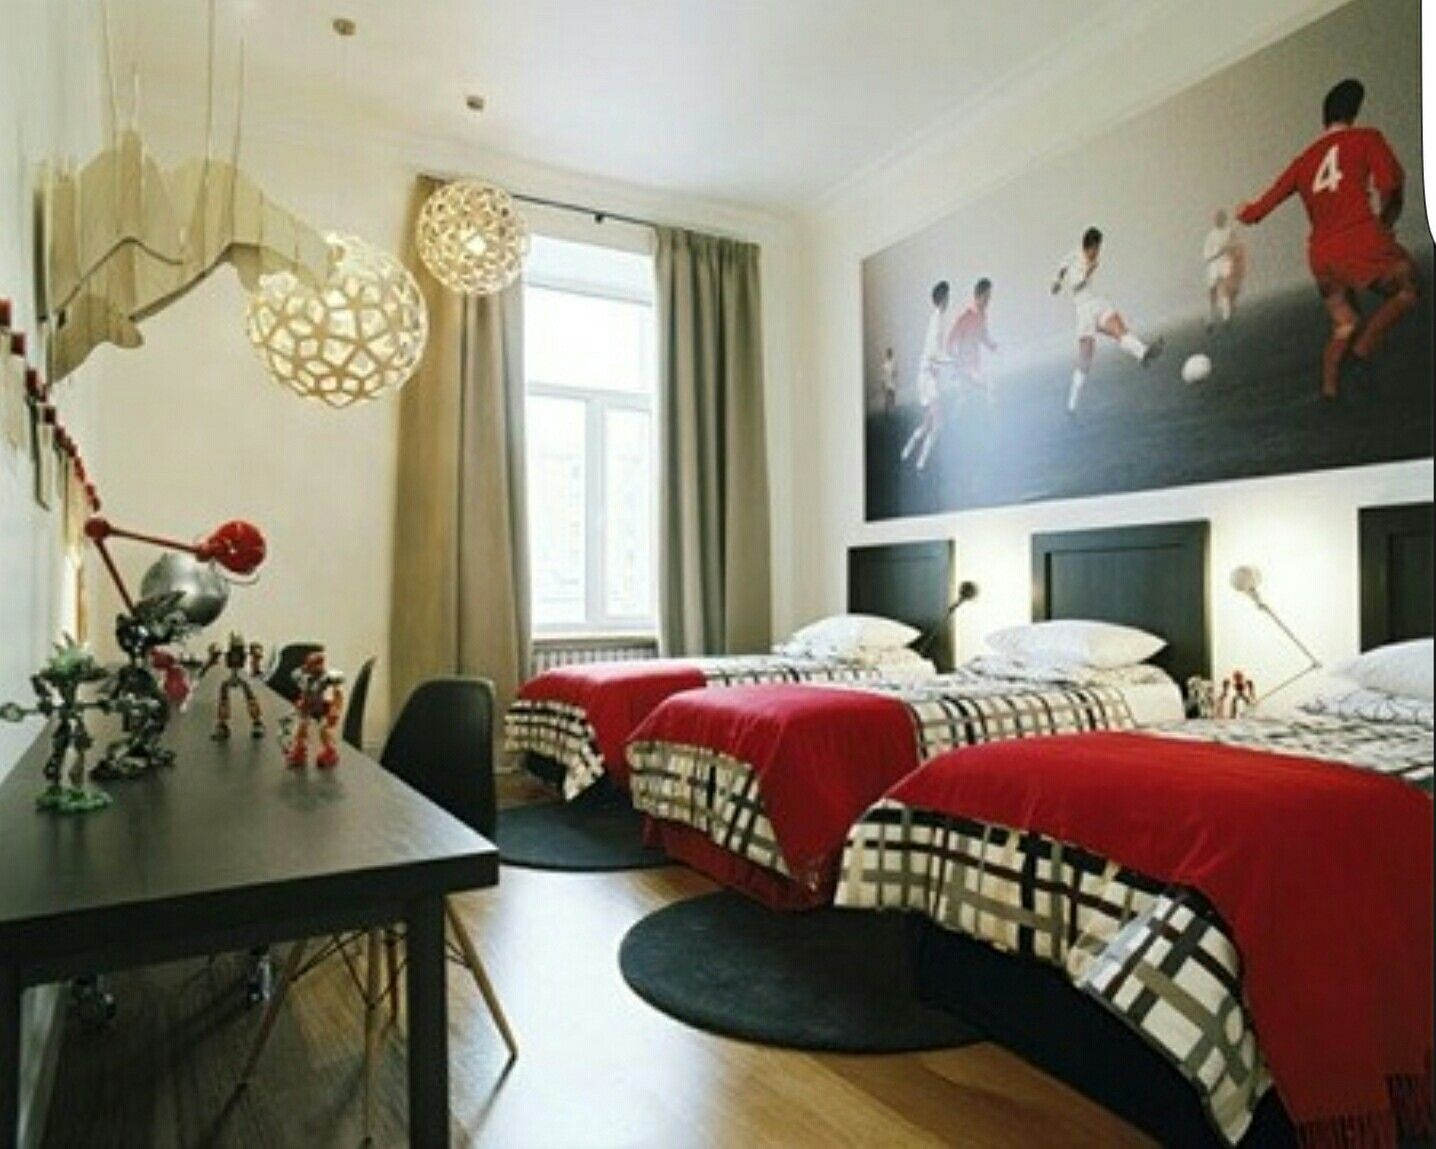 Black plaid and red shared boy room | Office Space | Pinterest